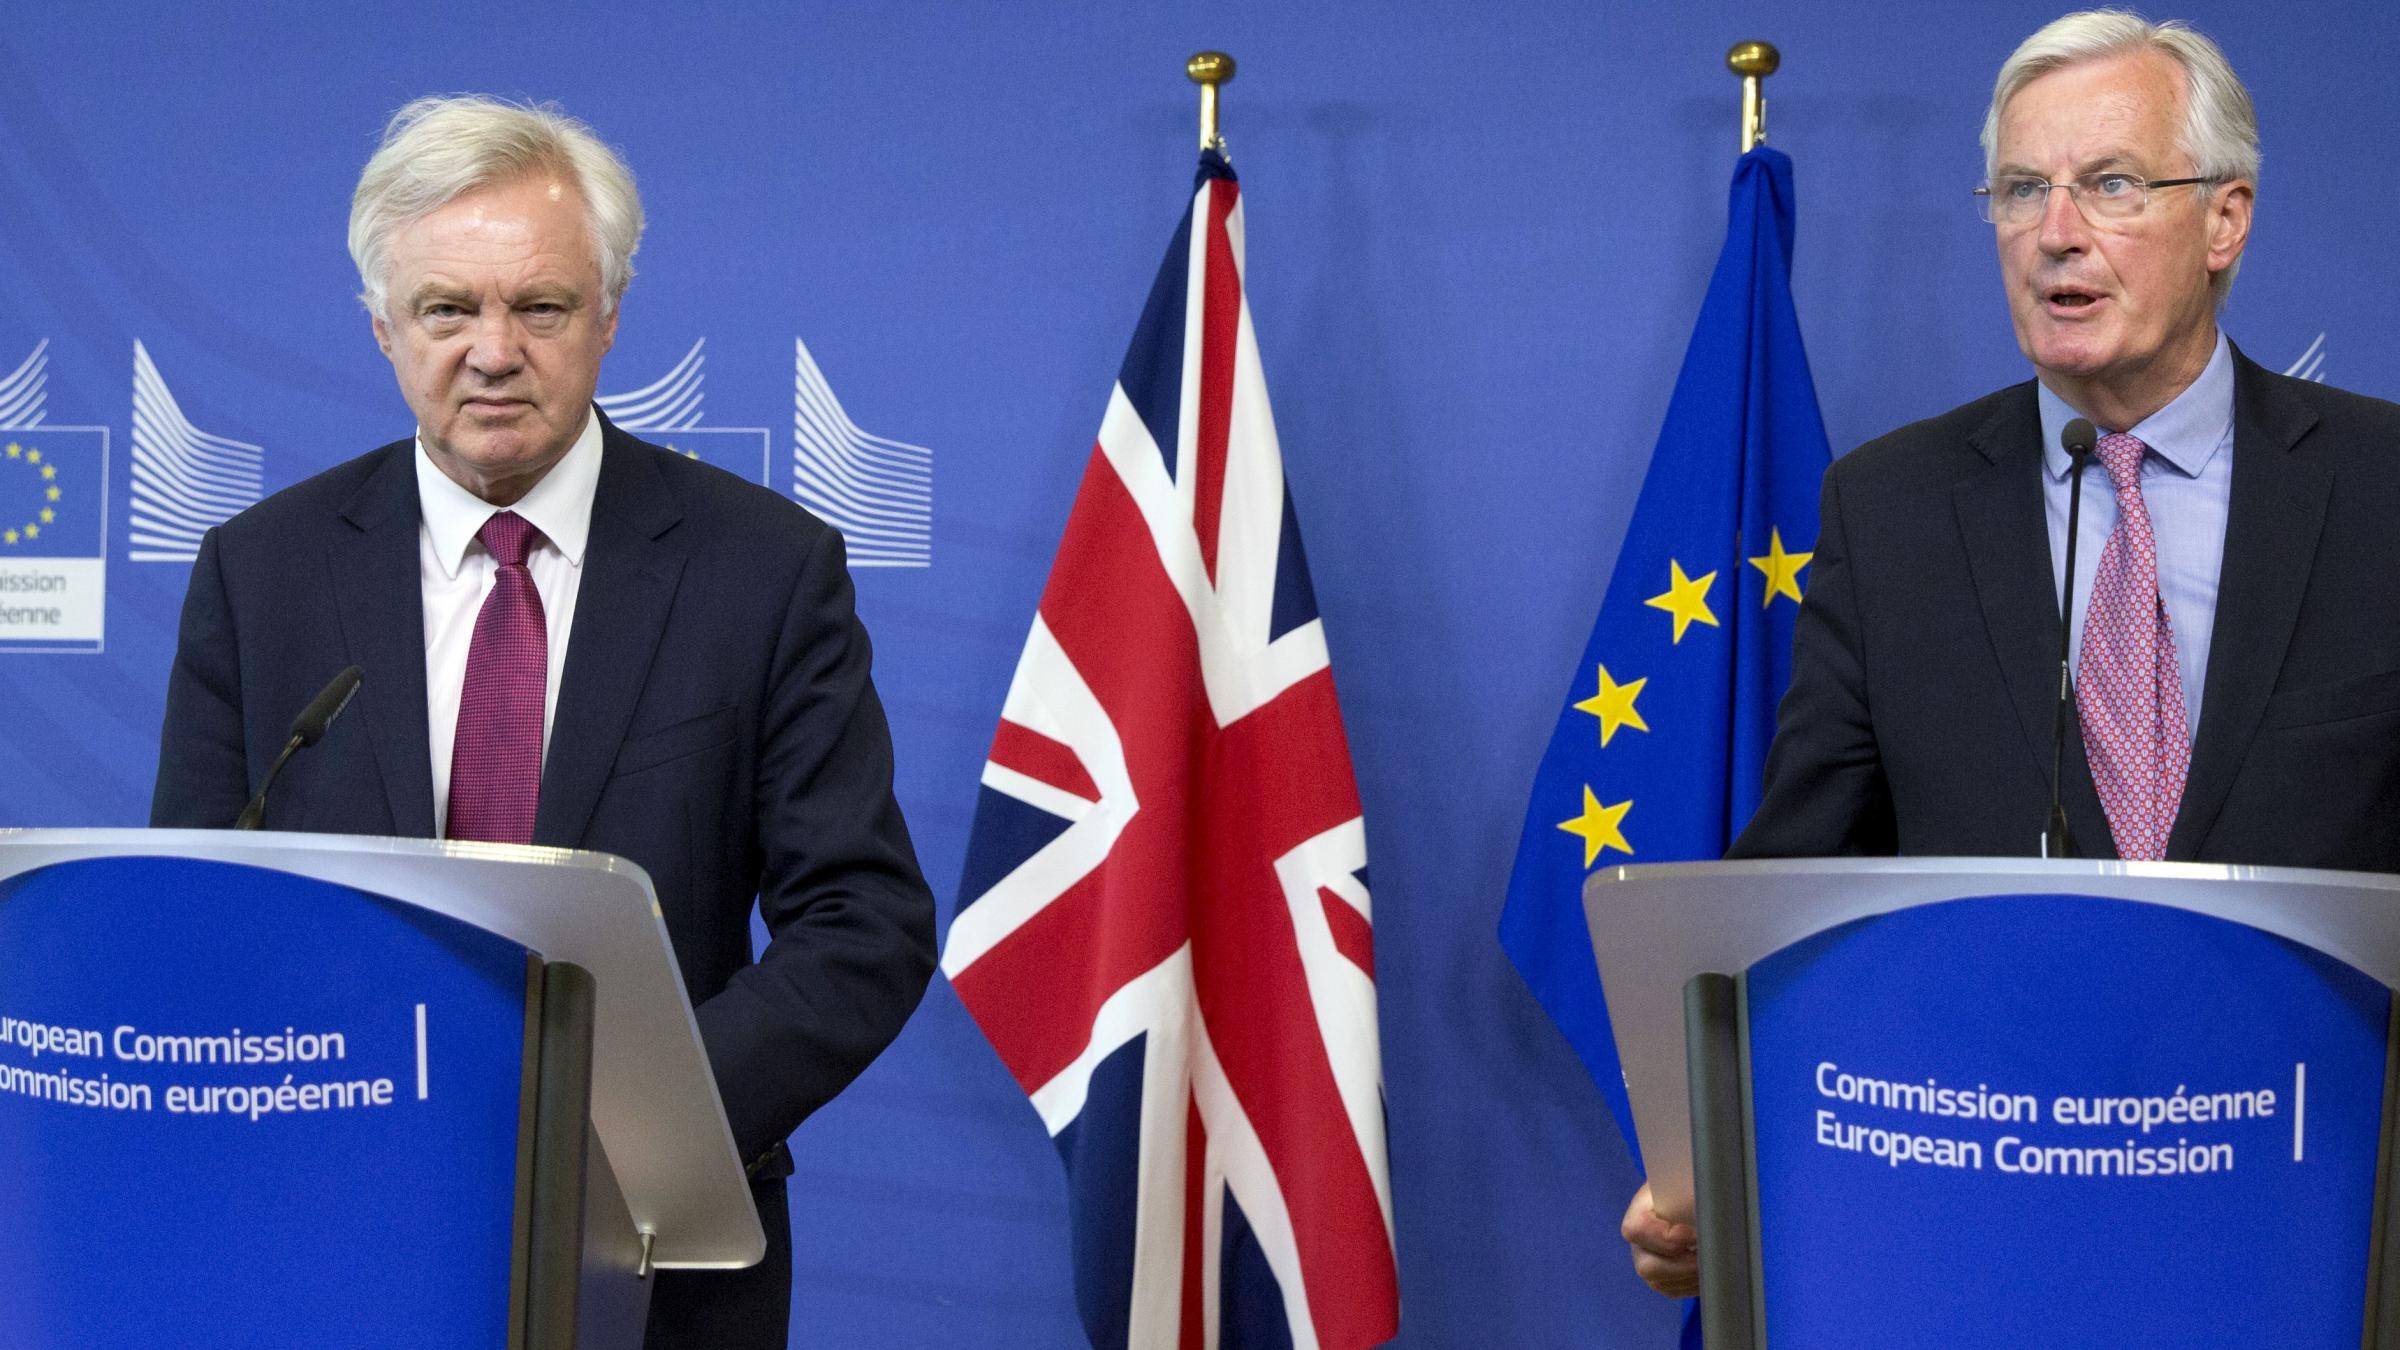 EU Judges Must Oversee Brexit Transition, Barnier Tells UK